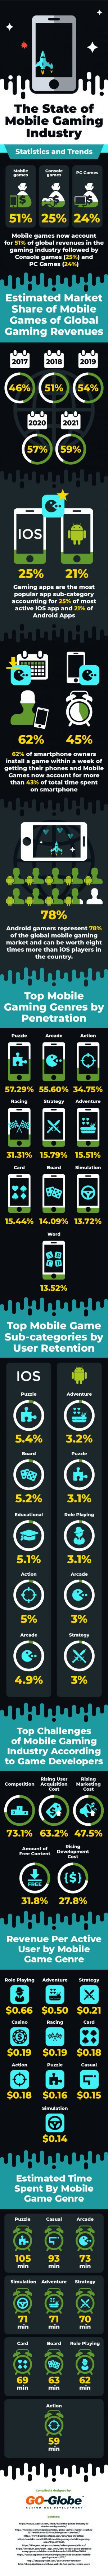 The State of Mobile Gaming Industry